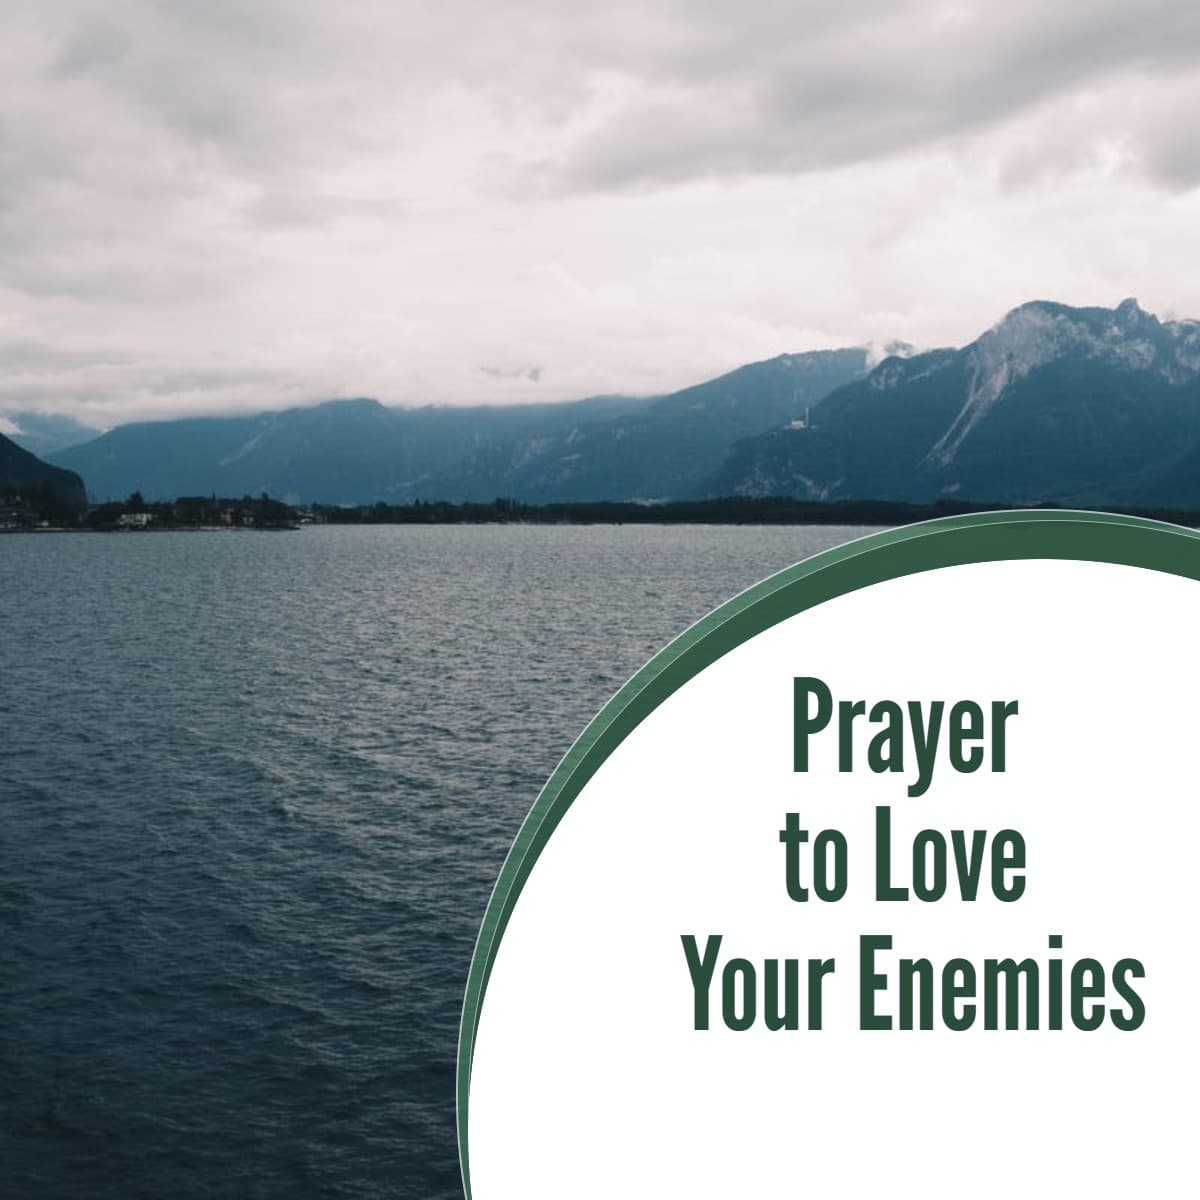 A Prayer to Love Your Enemies